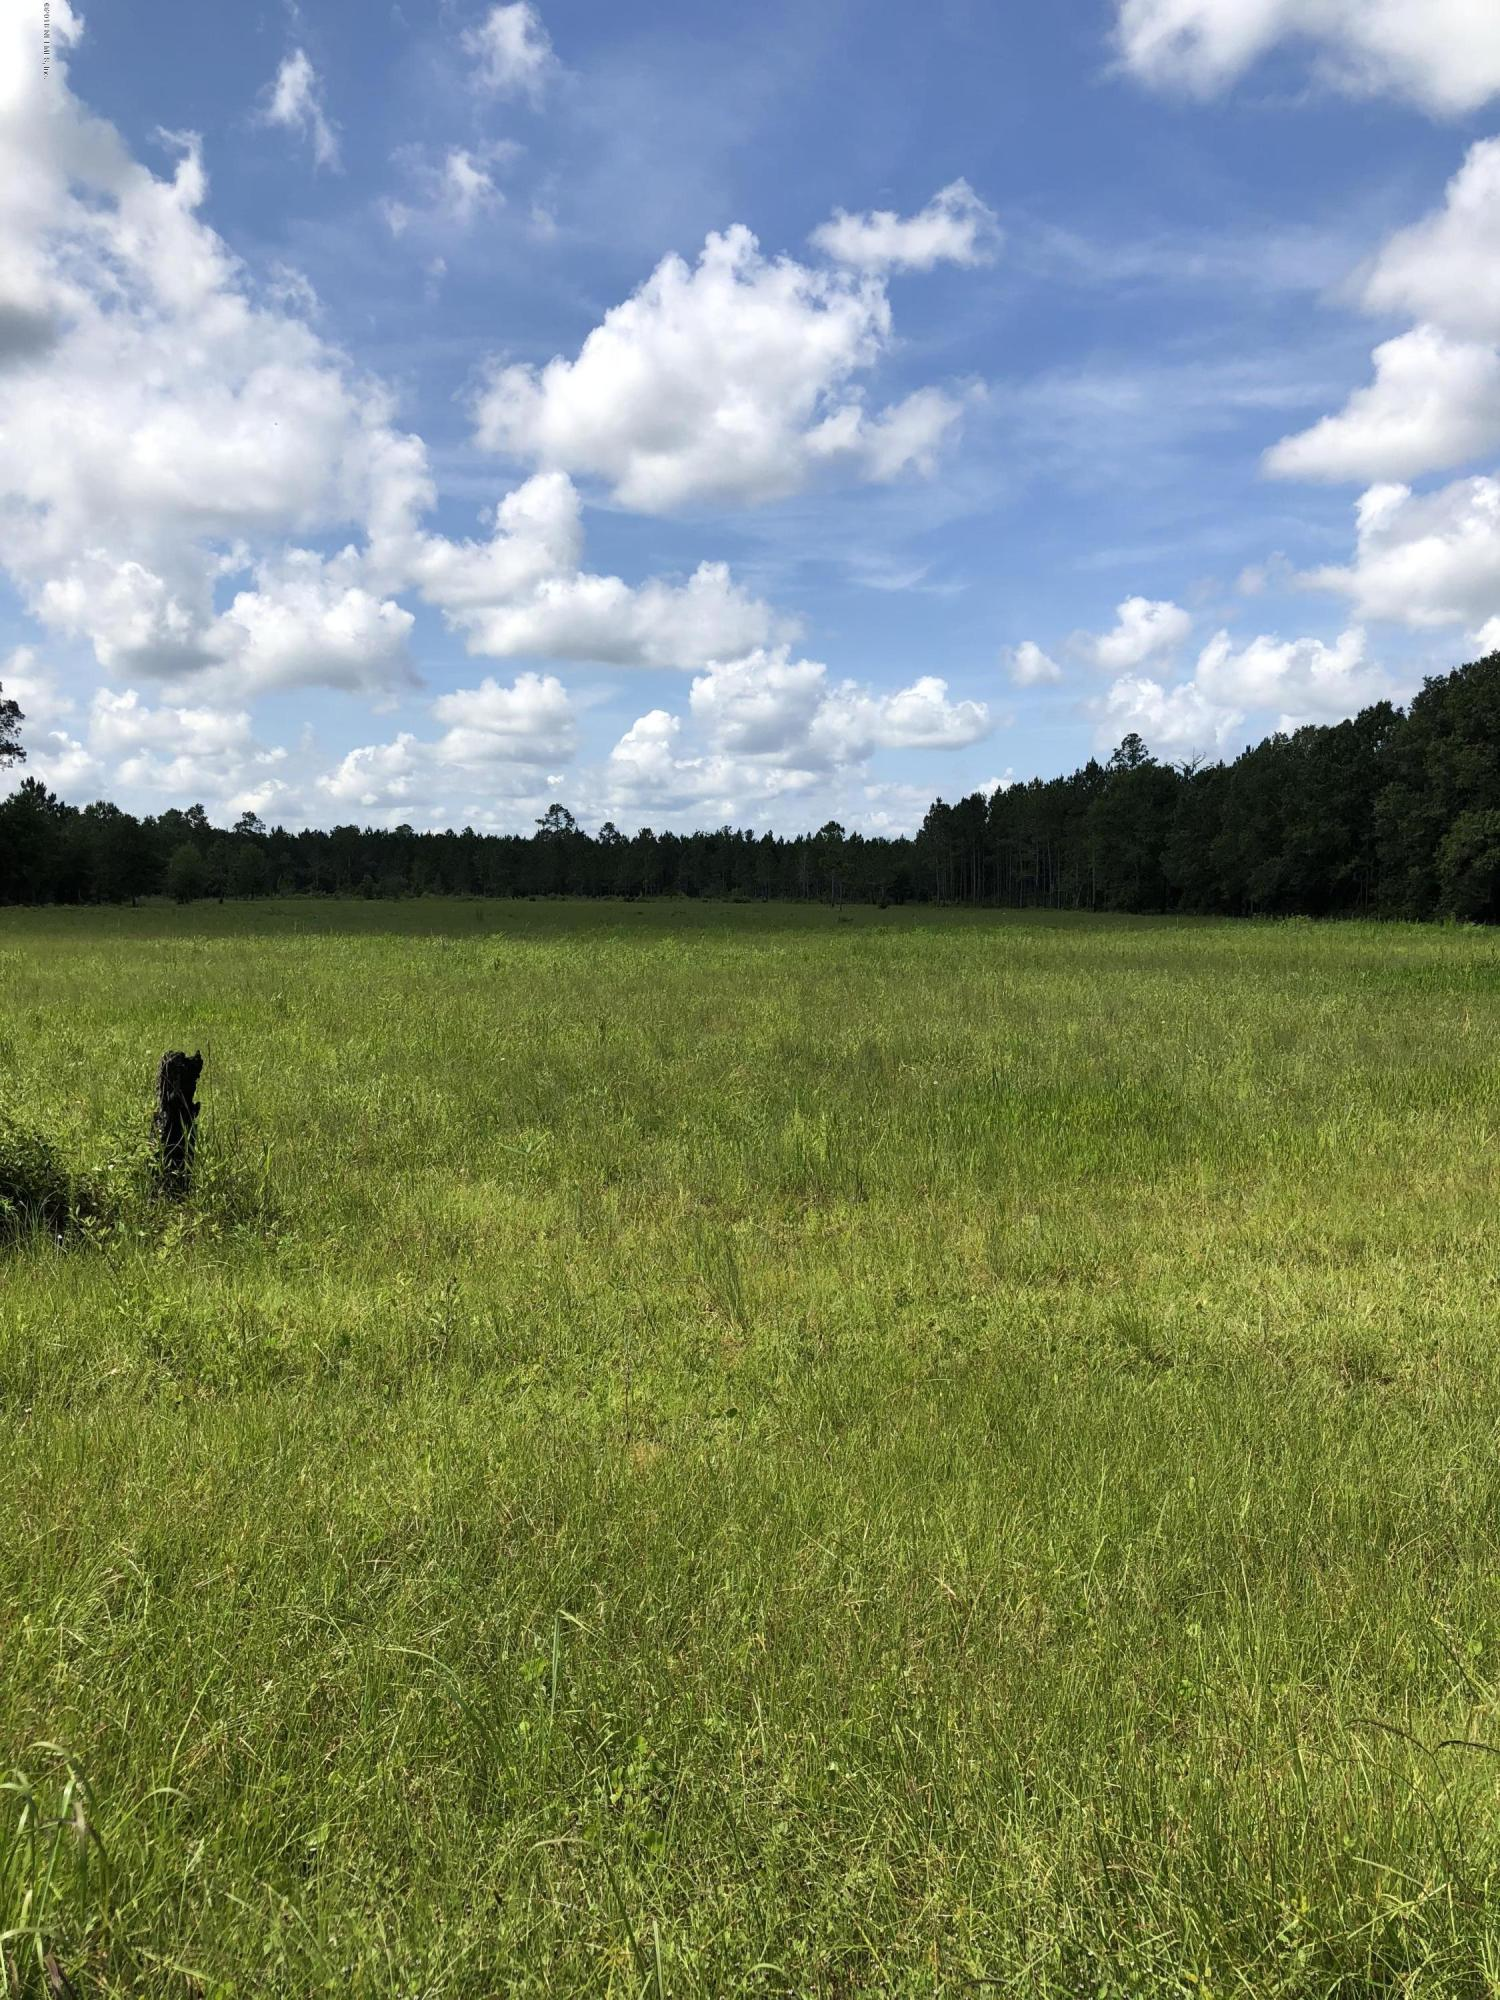 0 COUNTY ROAD 125, LAWTEY, FLORIDA 32058, ,Vacant land,For sale,COUNTY ROAD 125,944860